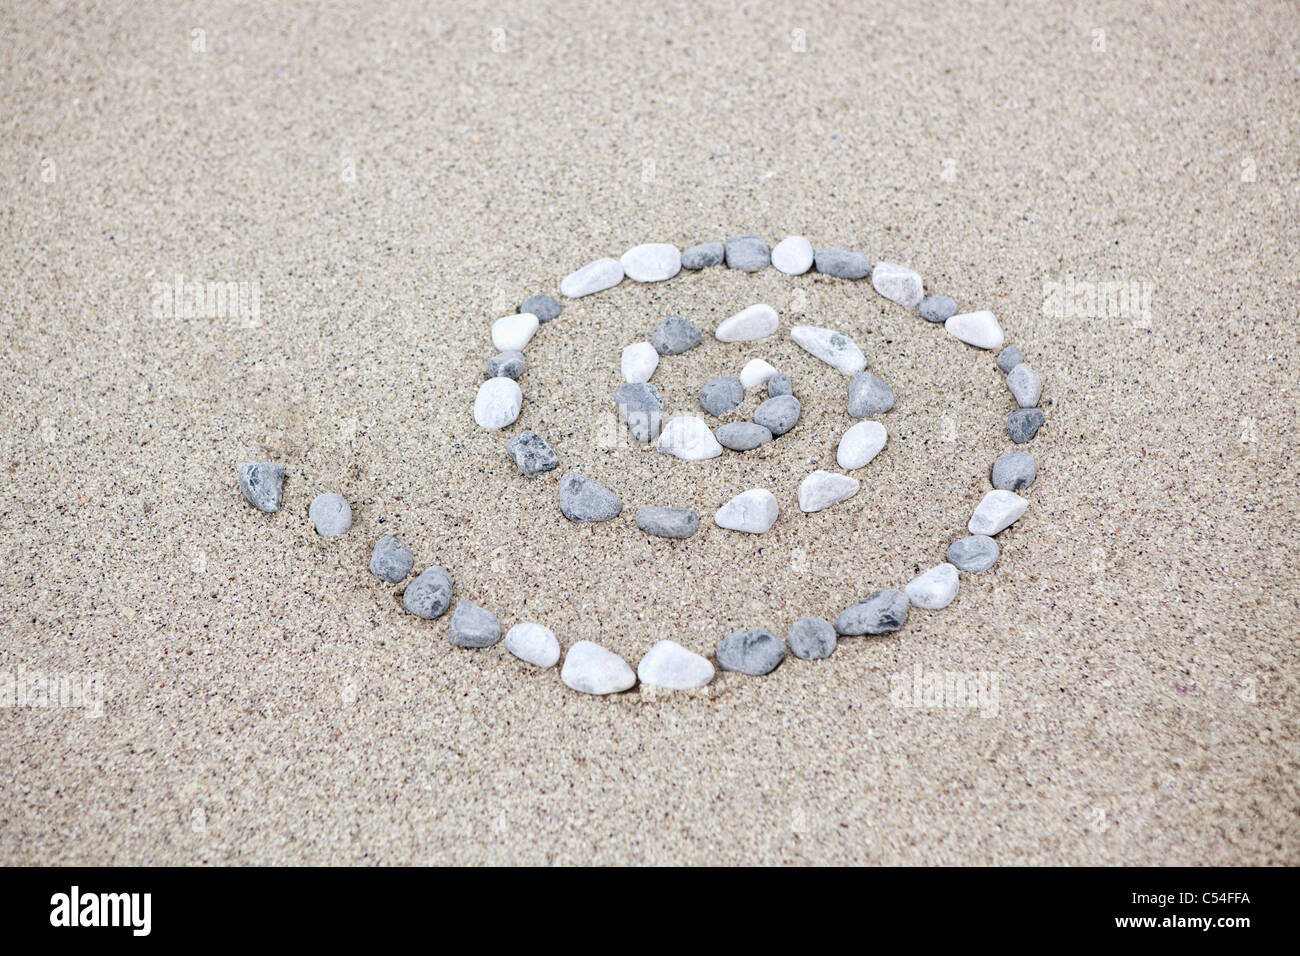 Pebbles arranged in spiral shape on beach - Stock Image